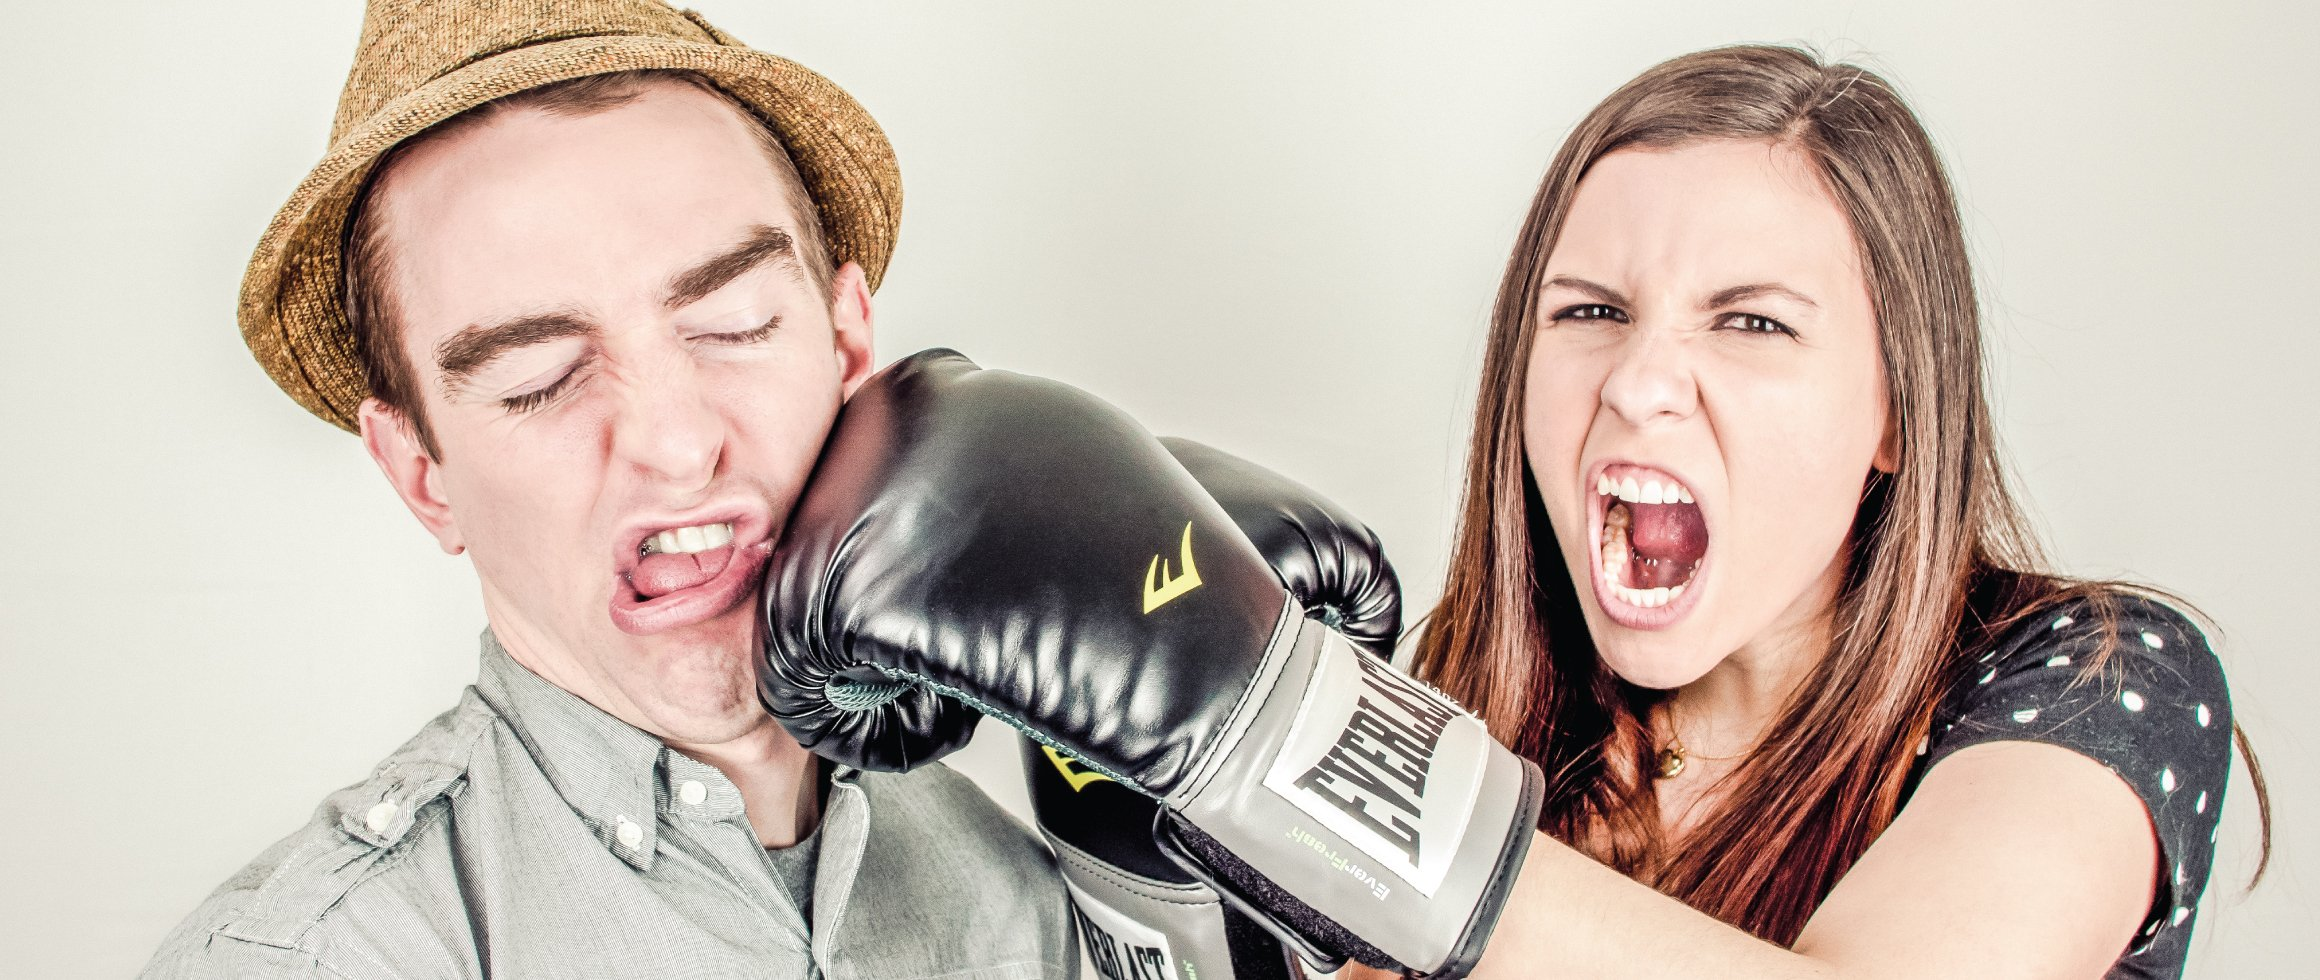 4 Ways To Deal With Difficult People